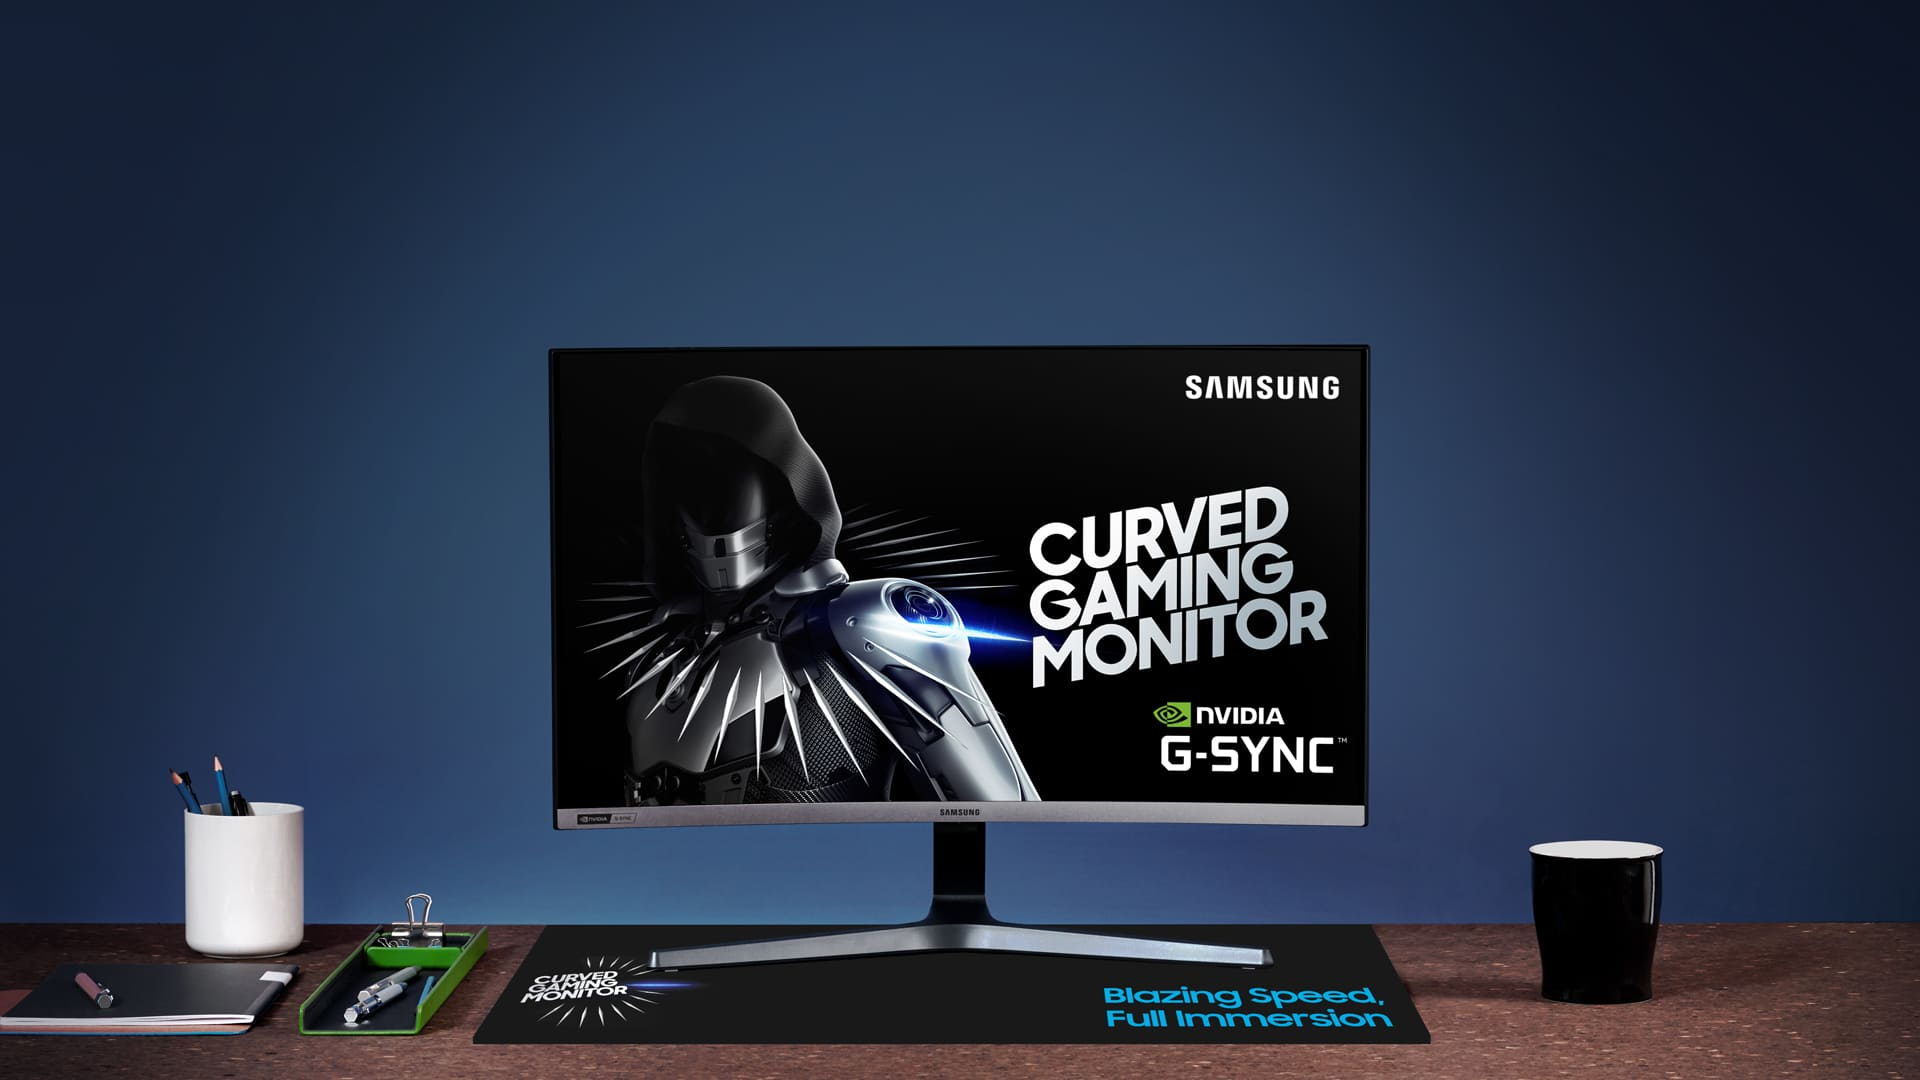 Gamescom 2019: The Samsung CRG527 Gaming Monitor Launched – It Features 240Hz Refresh Rate And G-Sync Compatibility